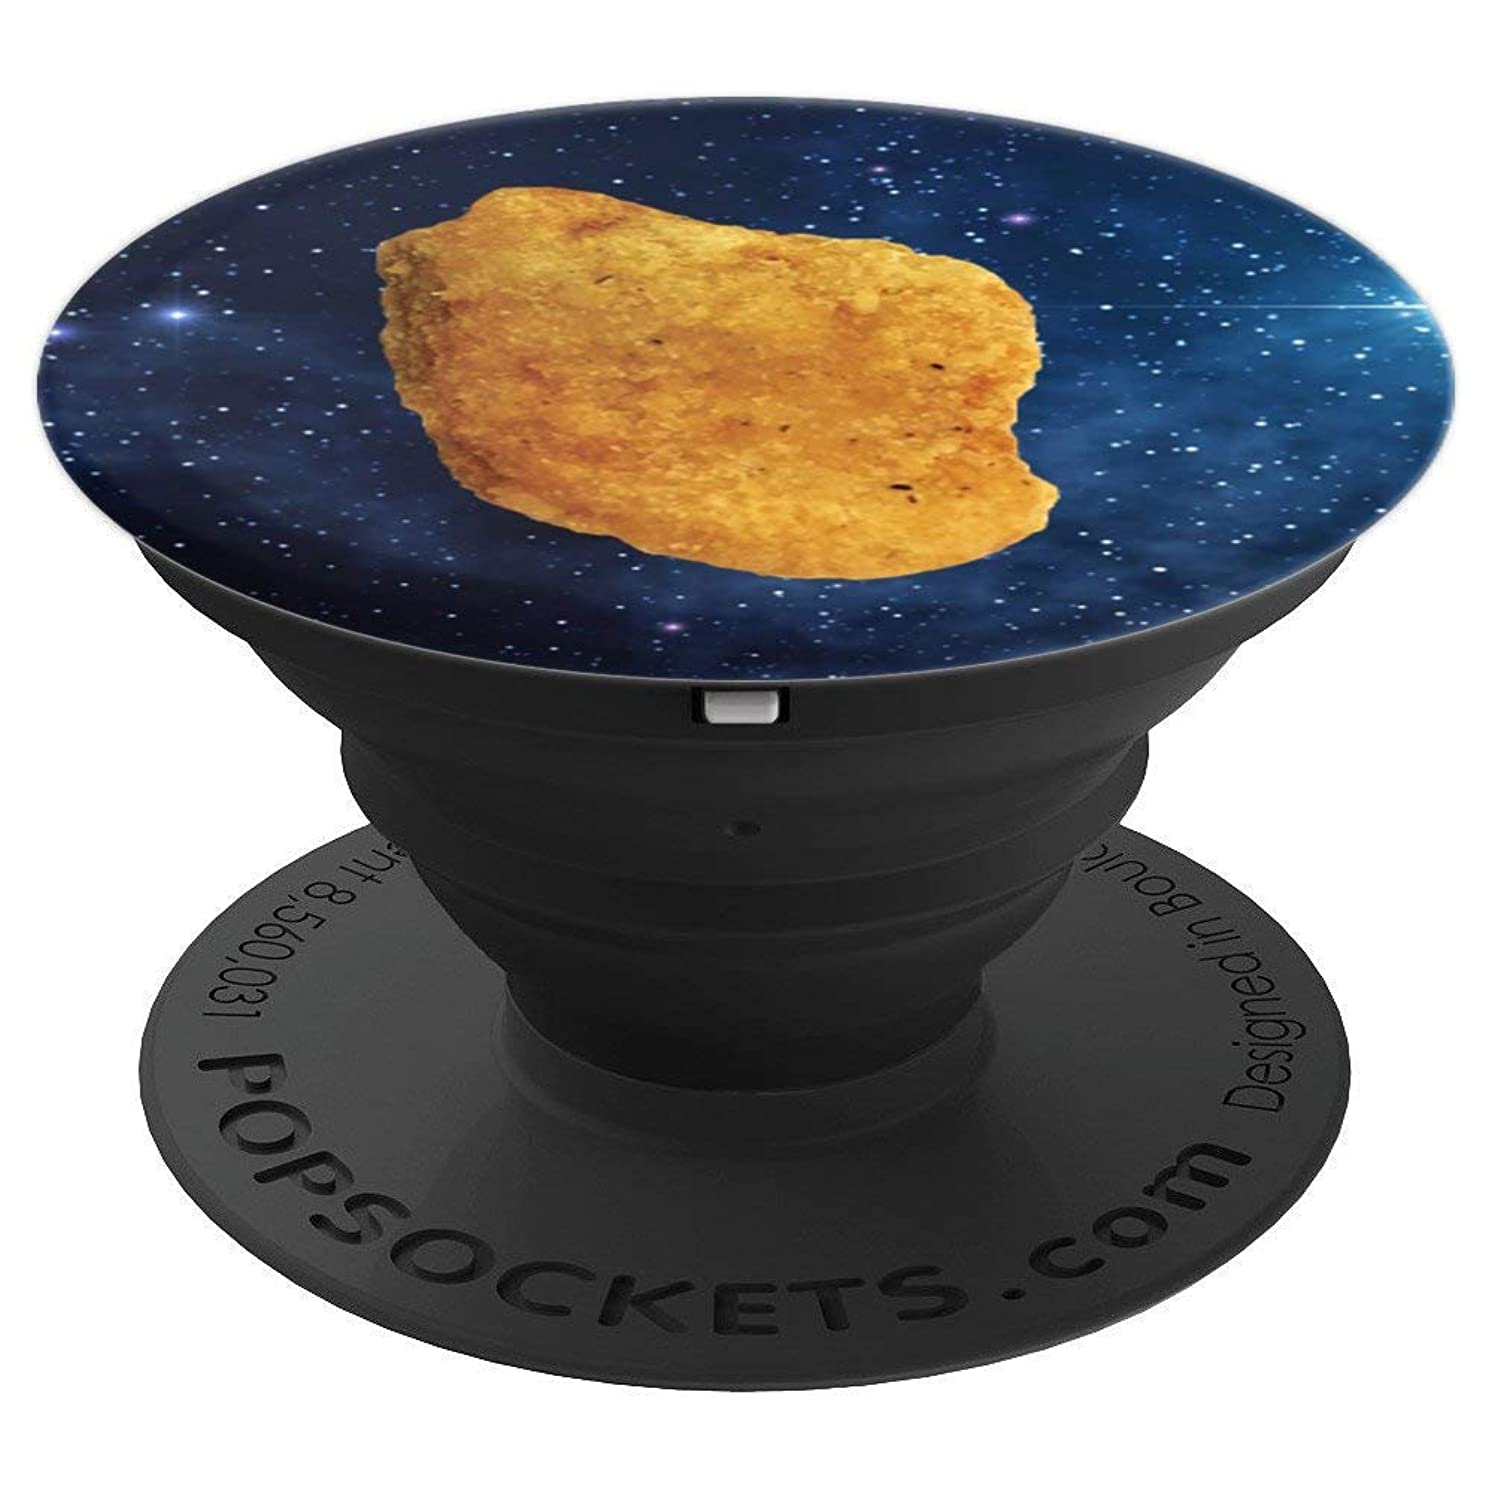 Chicken Nugget in Space Handle Funny Accessory Gift - PopSockets Grip and Stand for Phones and Tablets